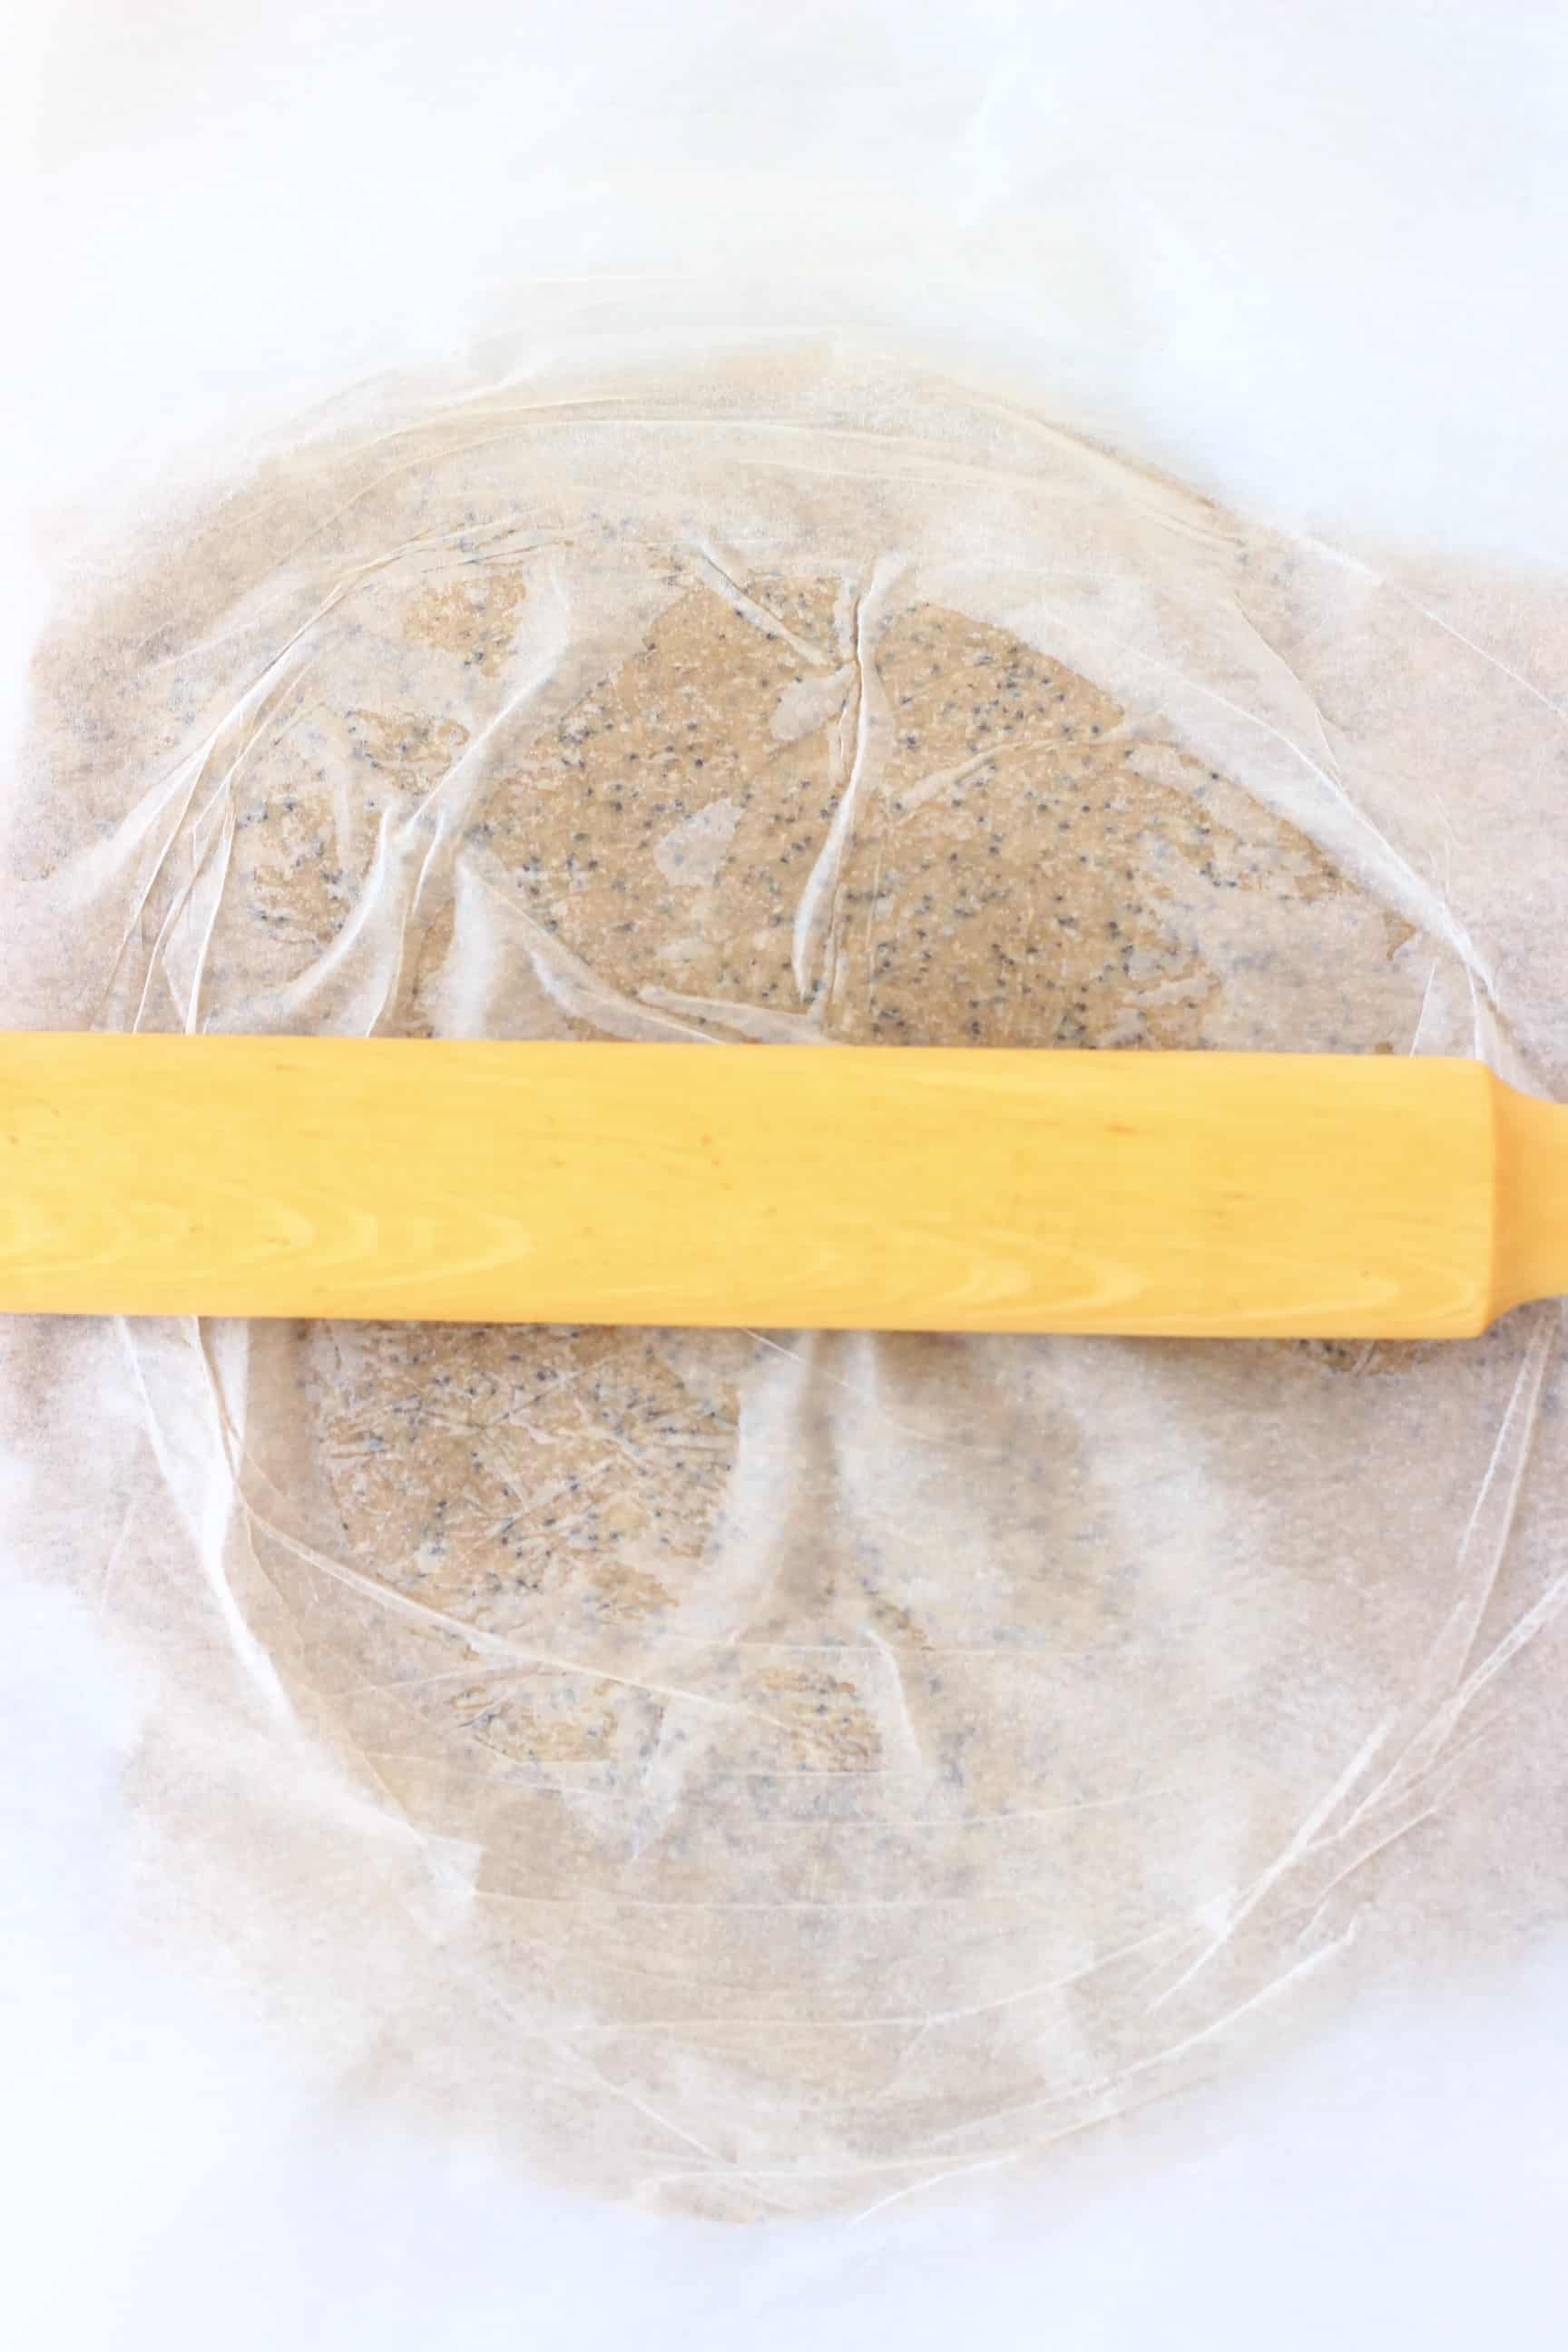 Raw gluten-free vegan crackers mixture between two sheets of baking paper being rolled out with a rolling pin